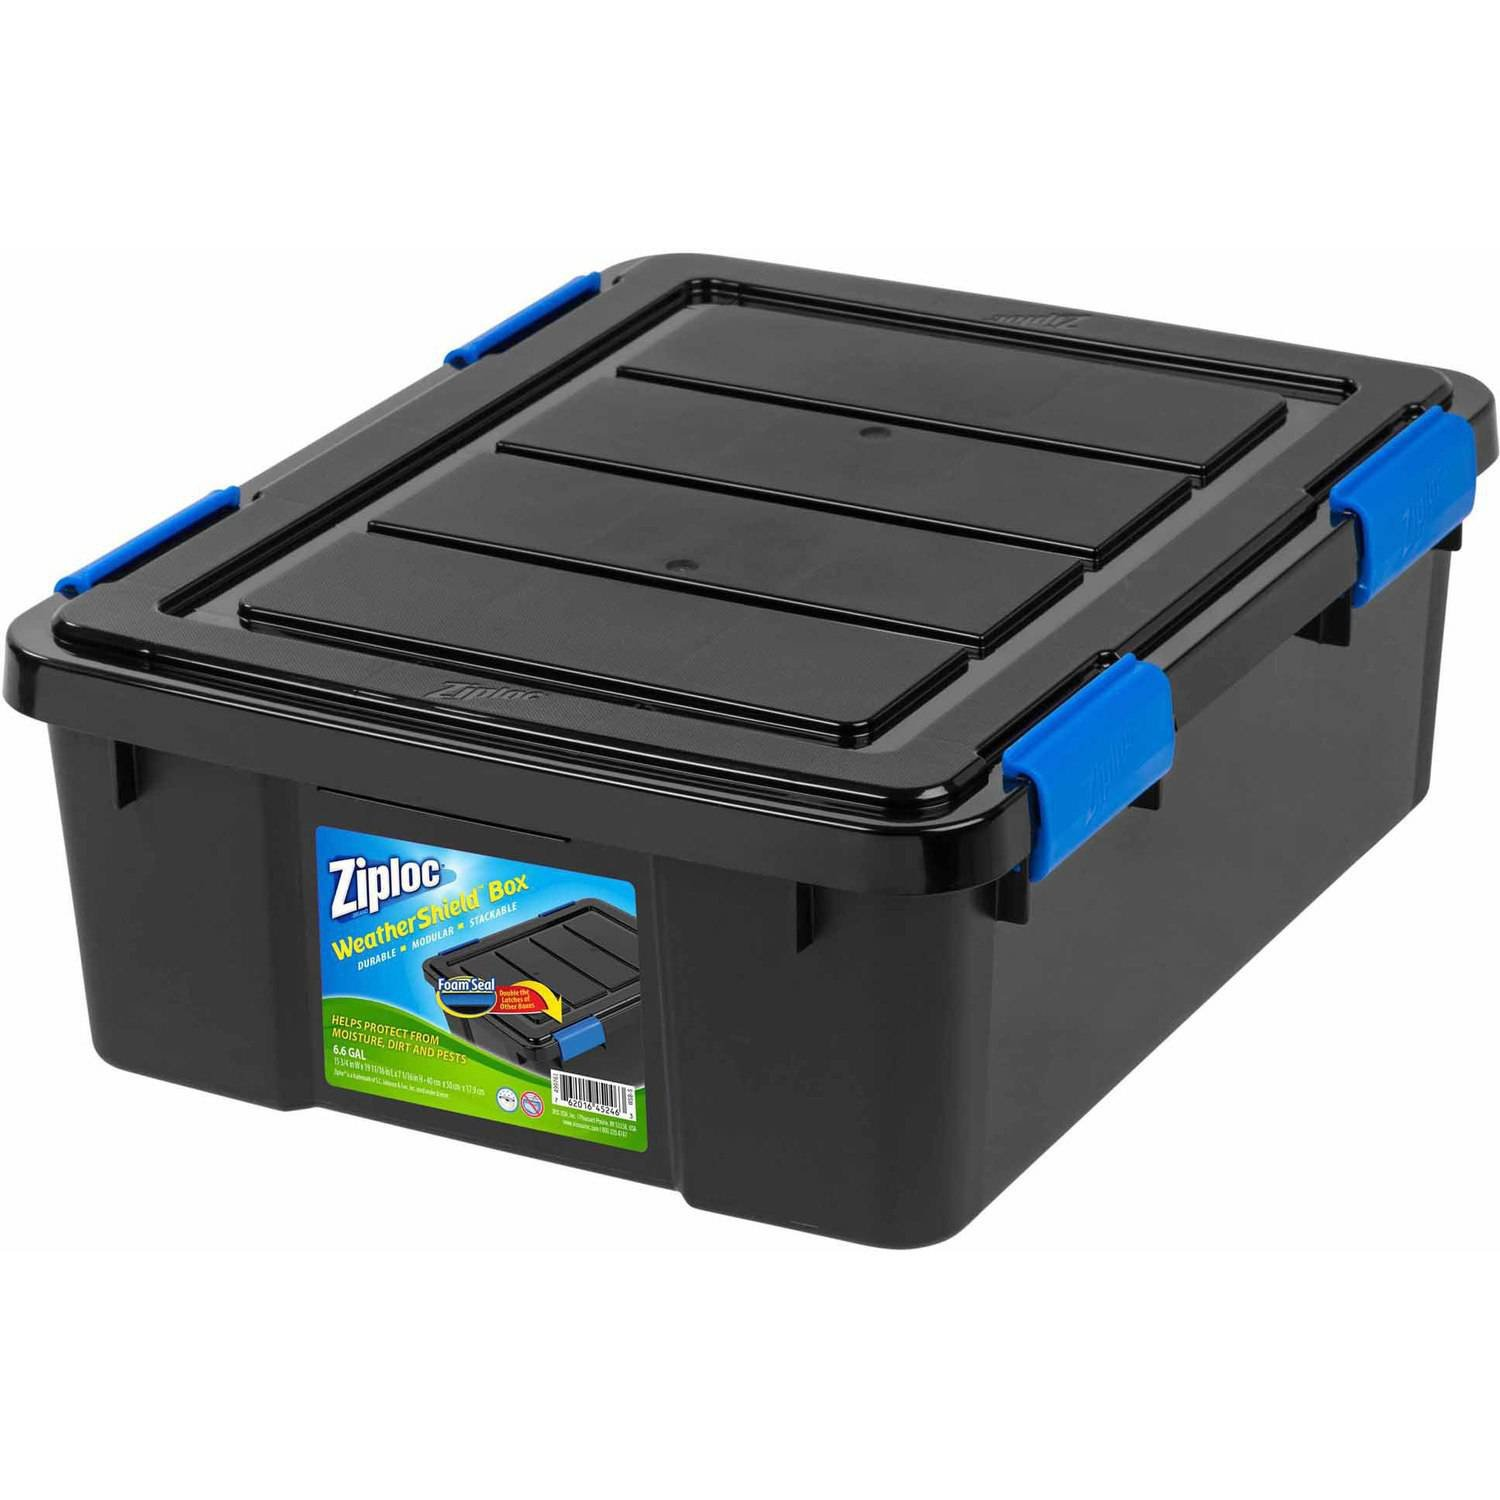 IRIS USA, Inc. Ziploc 26.5 Qt. Small WeatherShield Storage Box Single Black by IRIS USA, Inc.